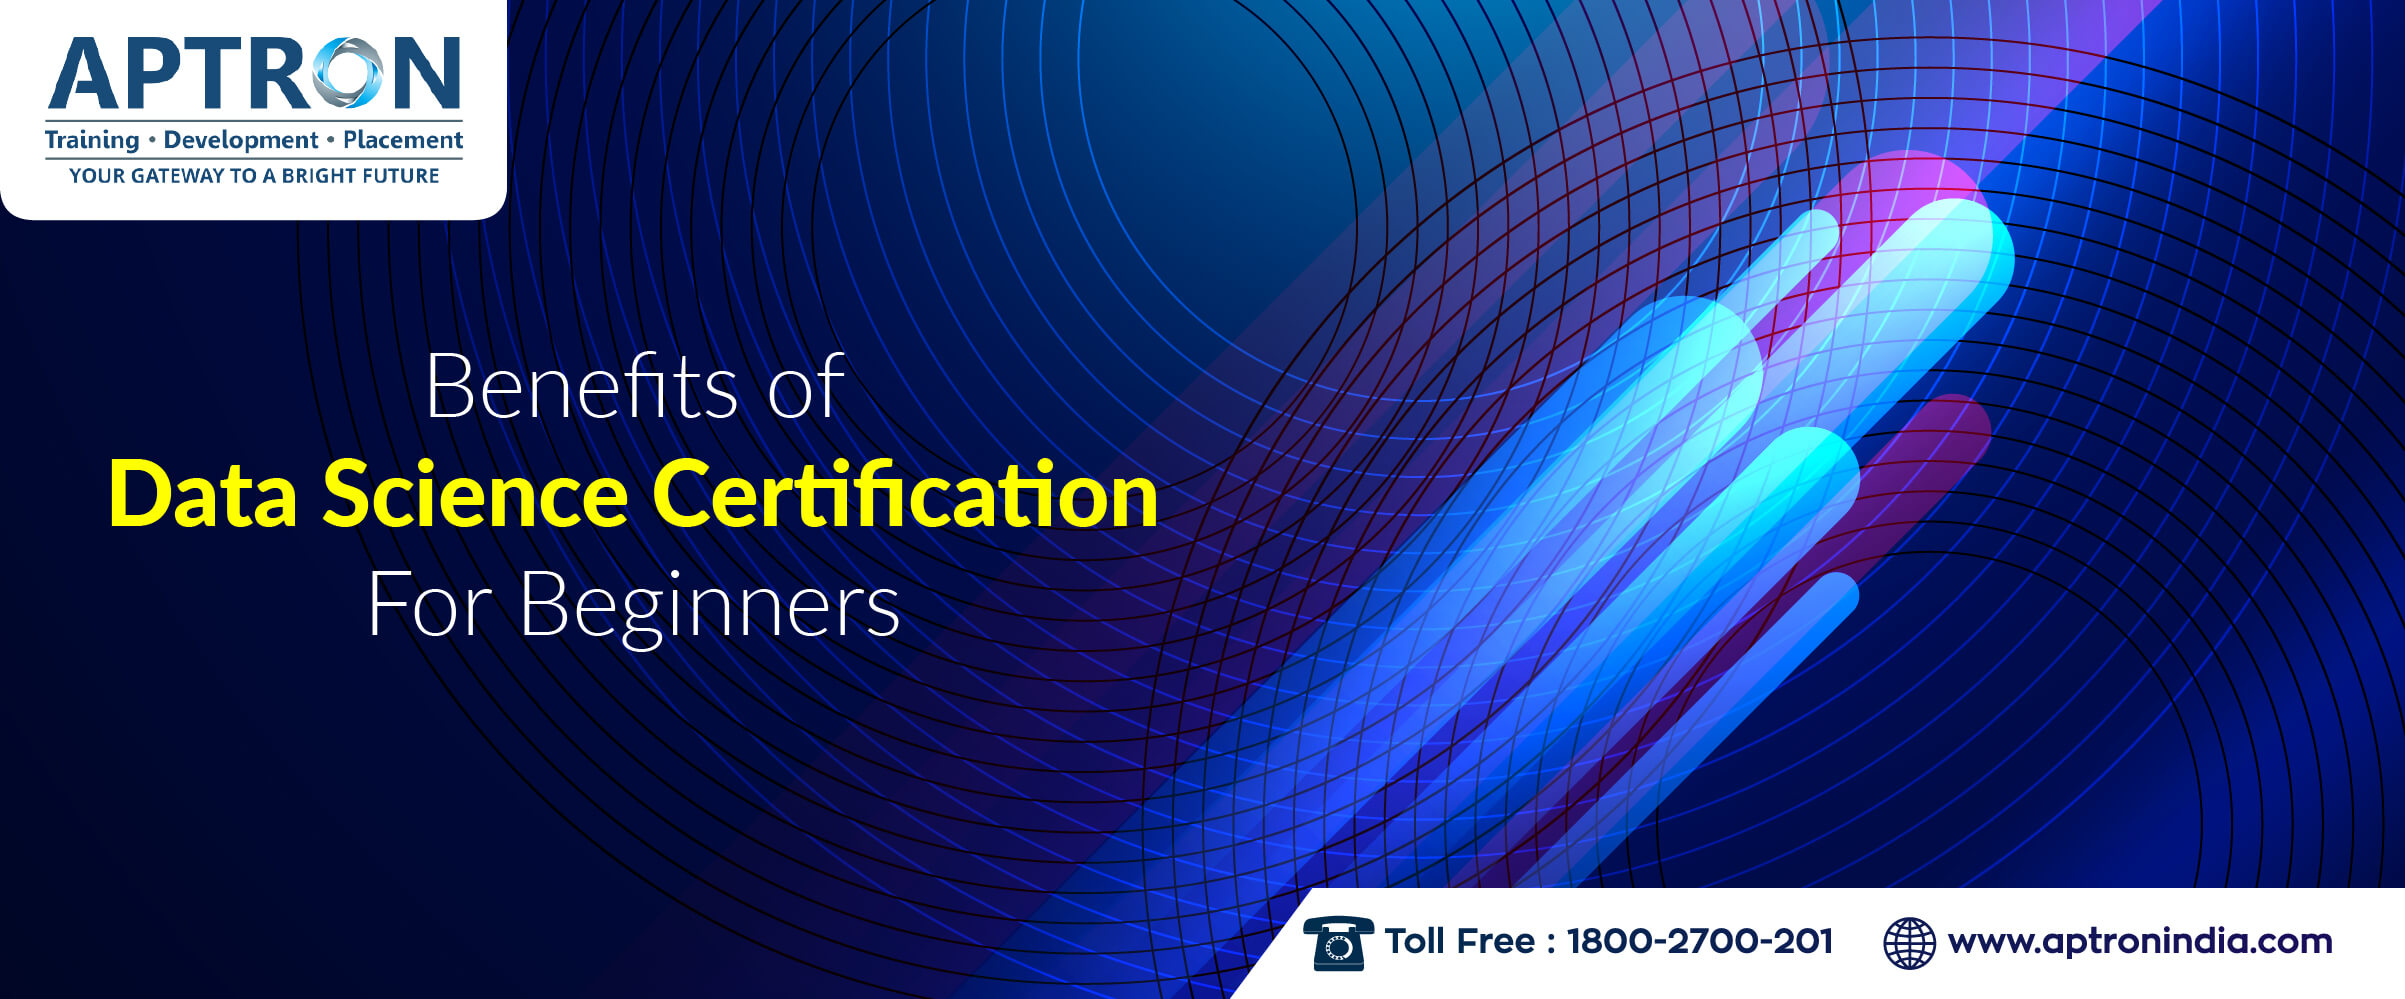 Benefits of Data Science Certification Training for Beginners